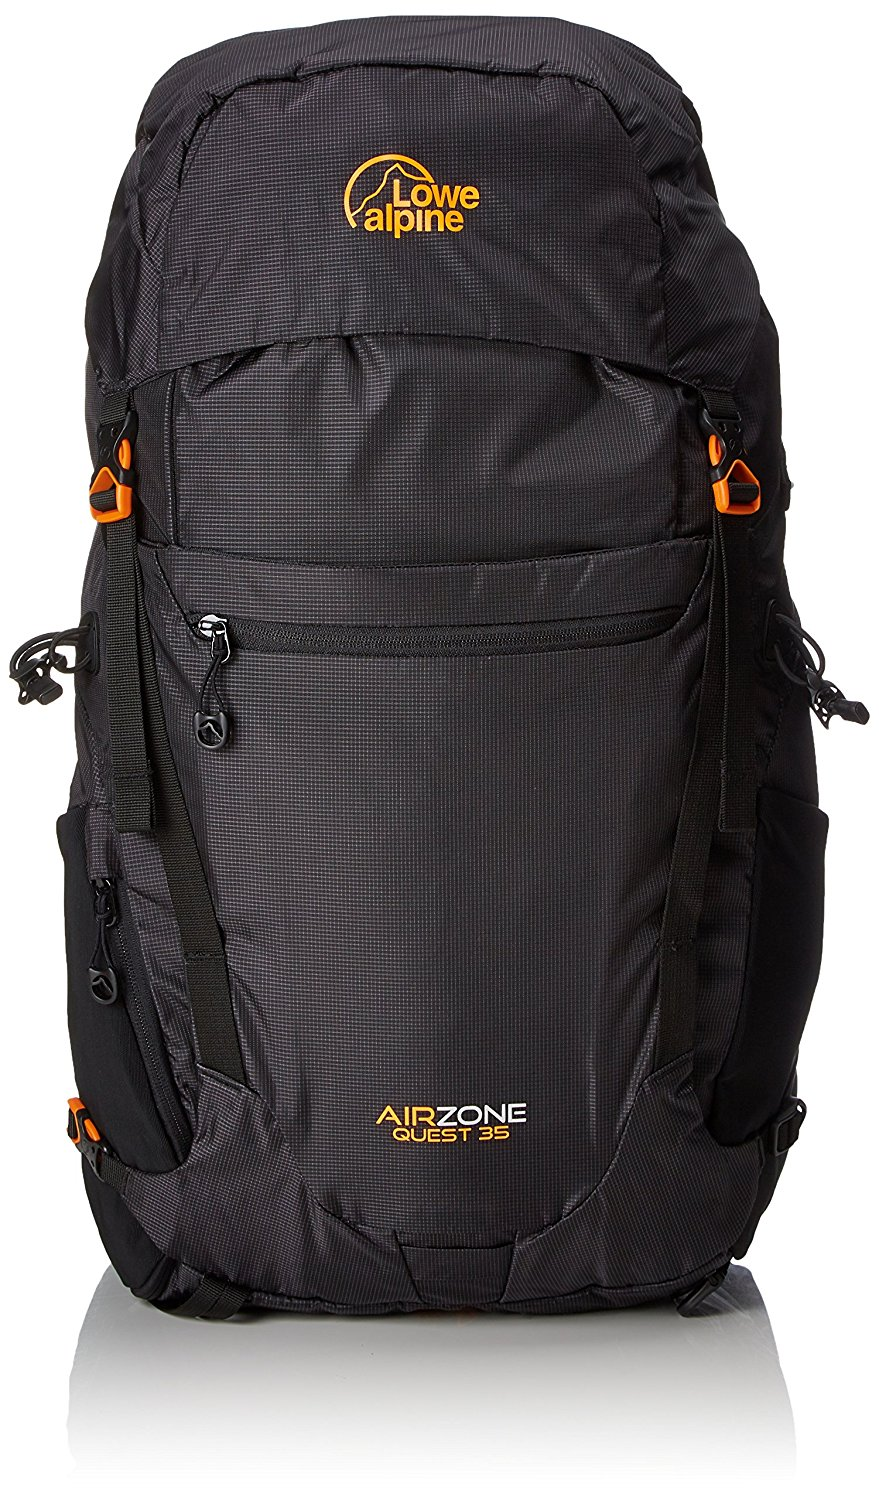 6a50f1f6d7 Buy Lowe Alpine Airzone Z Backpack Nd18 Plum Wine/Magnt FTD-68-PL-18 ...